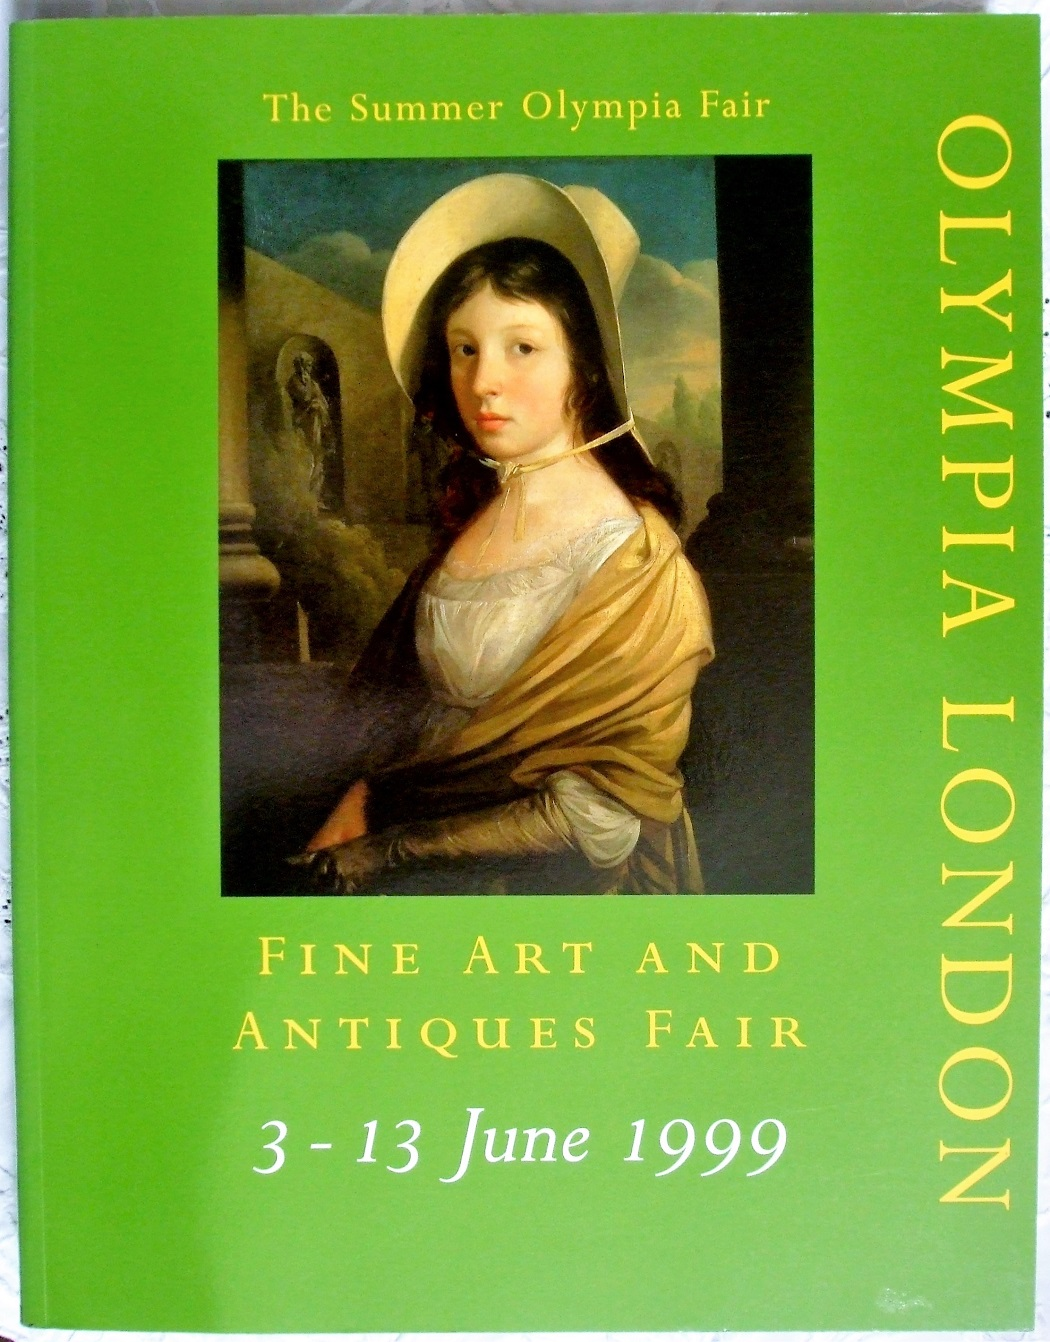 The Fine Art and Antiques Fair Olympia Summer 1999